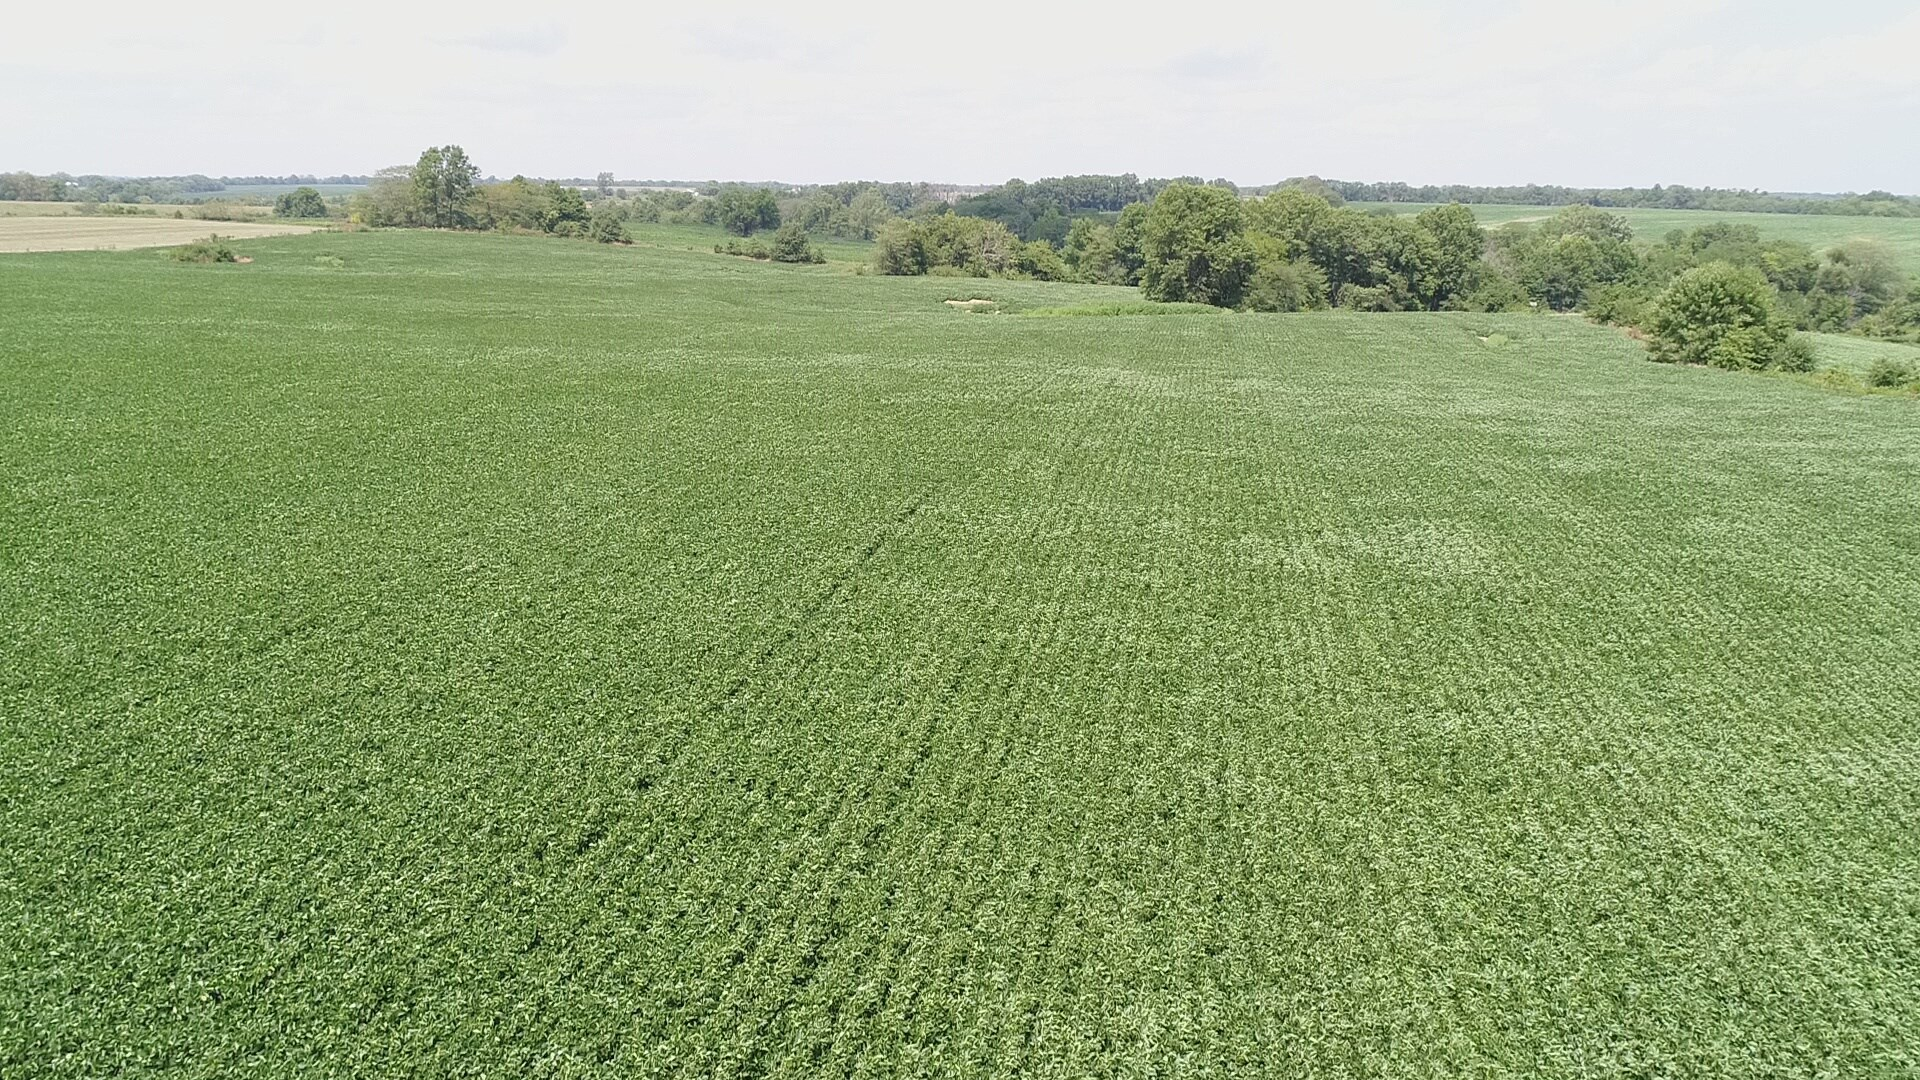 NORTHEAST MO ROW CROP FARM FOR SALE, LAND FOR SALE MISSOURI